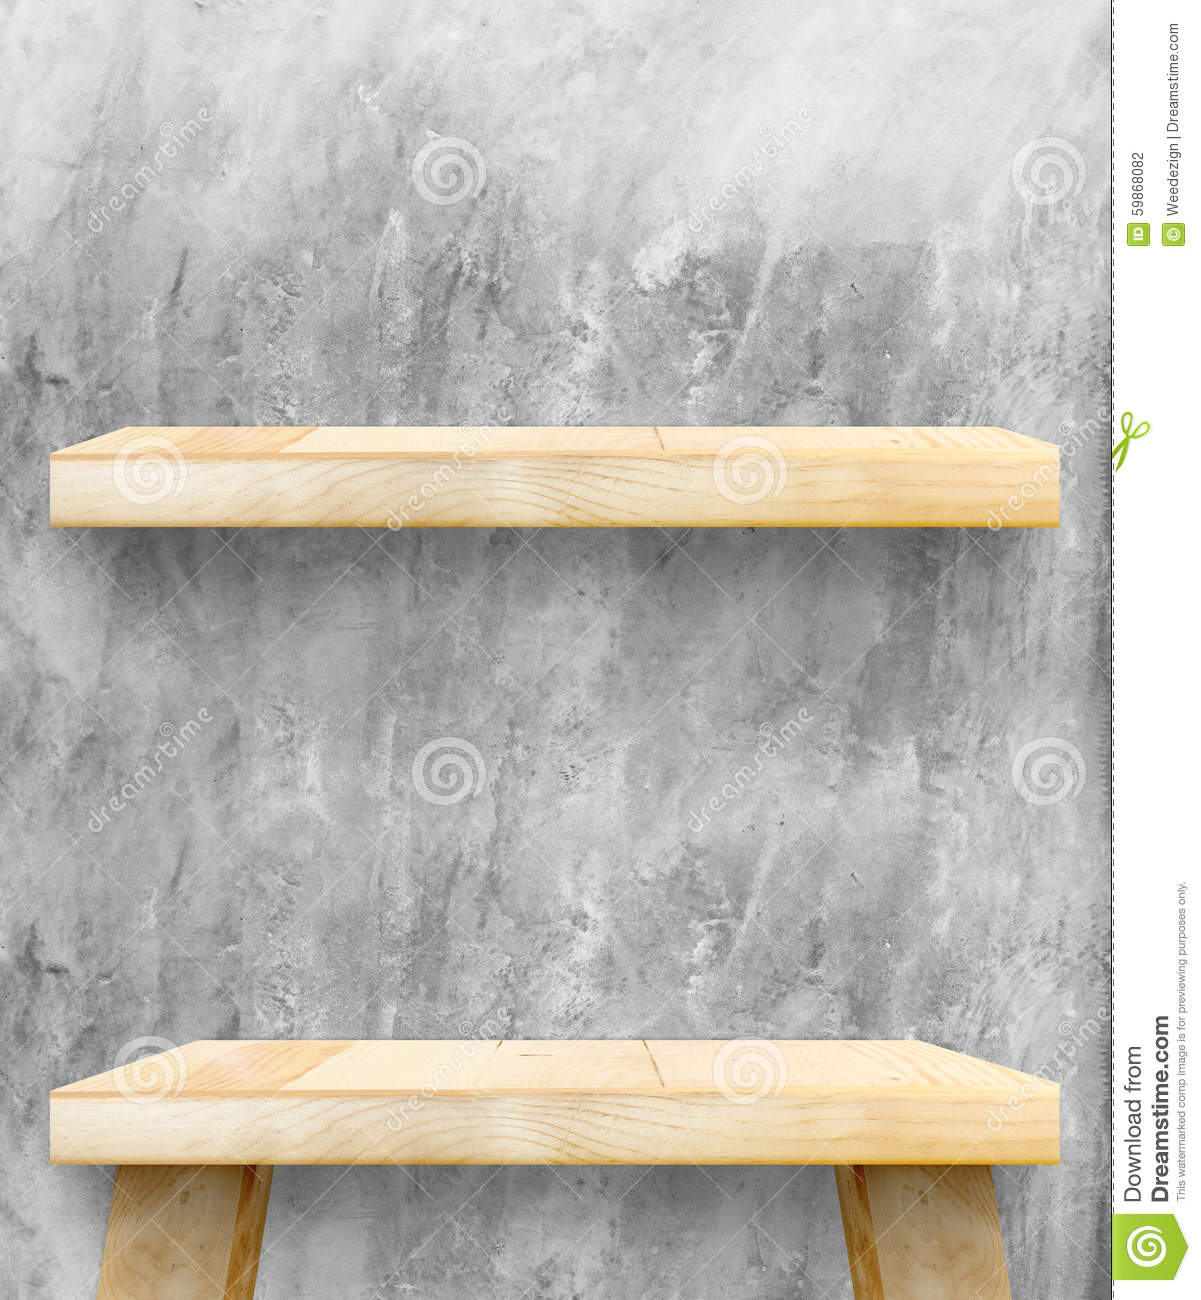 empty wooden table top and shelf at concrete wall template mock